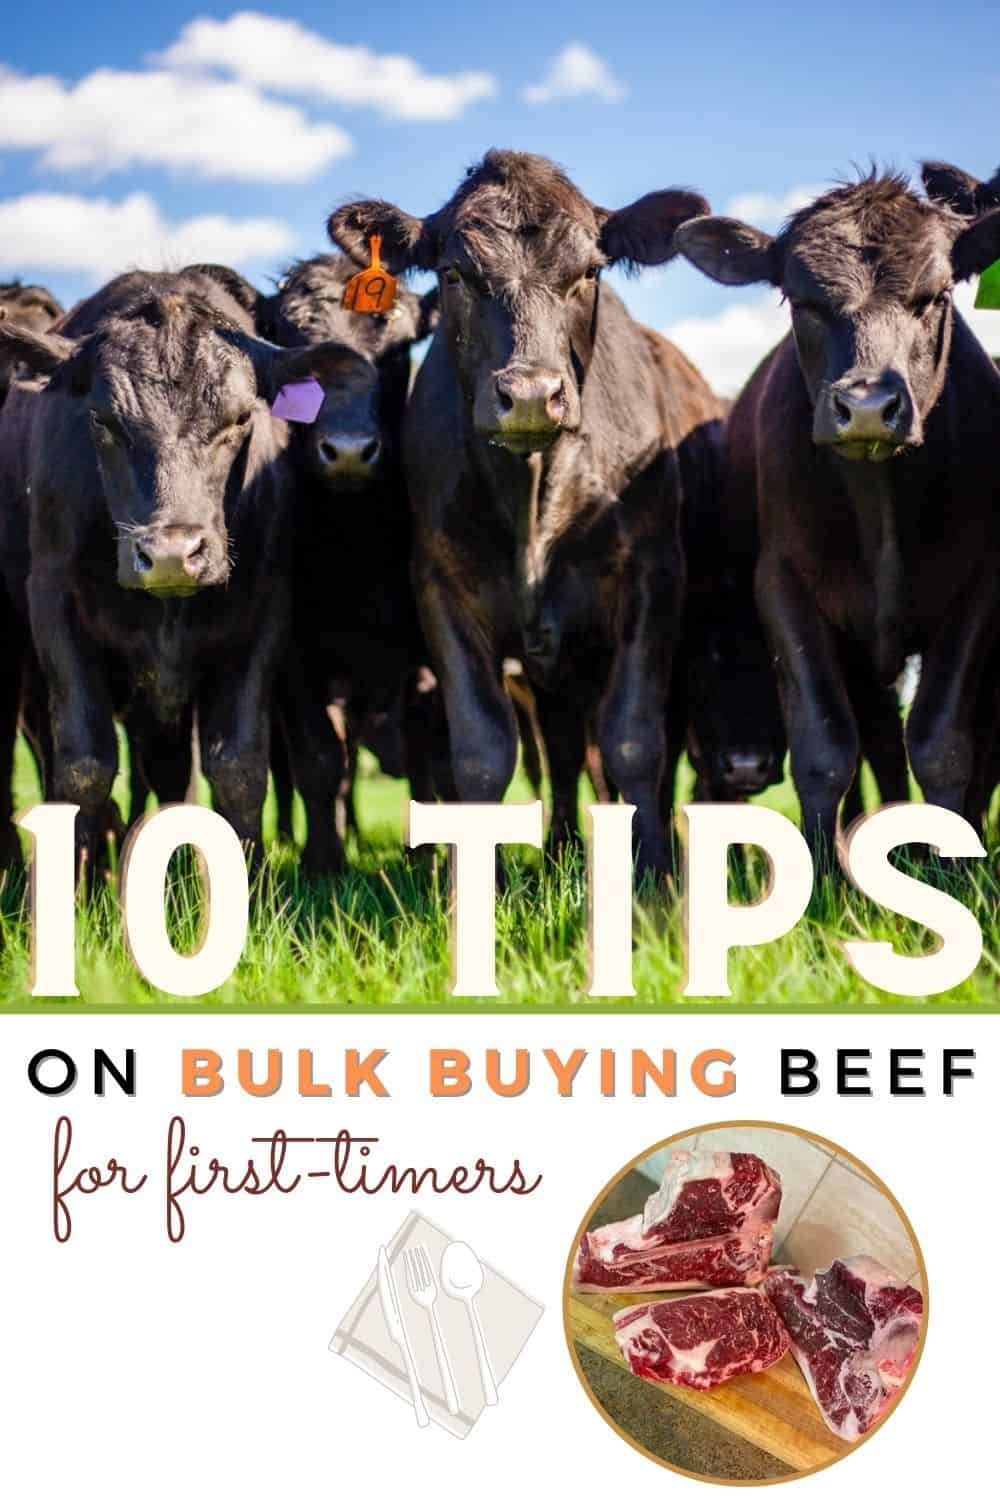 10 Tips on Bulk Buying Beef for First Timers